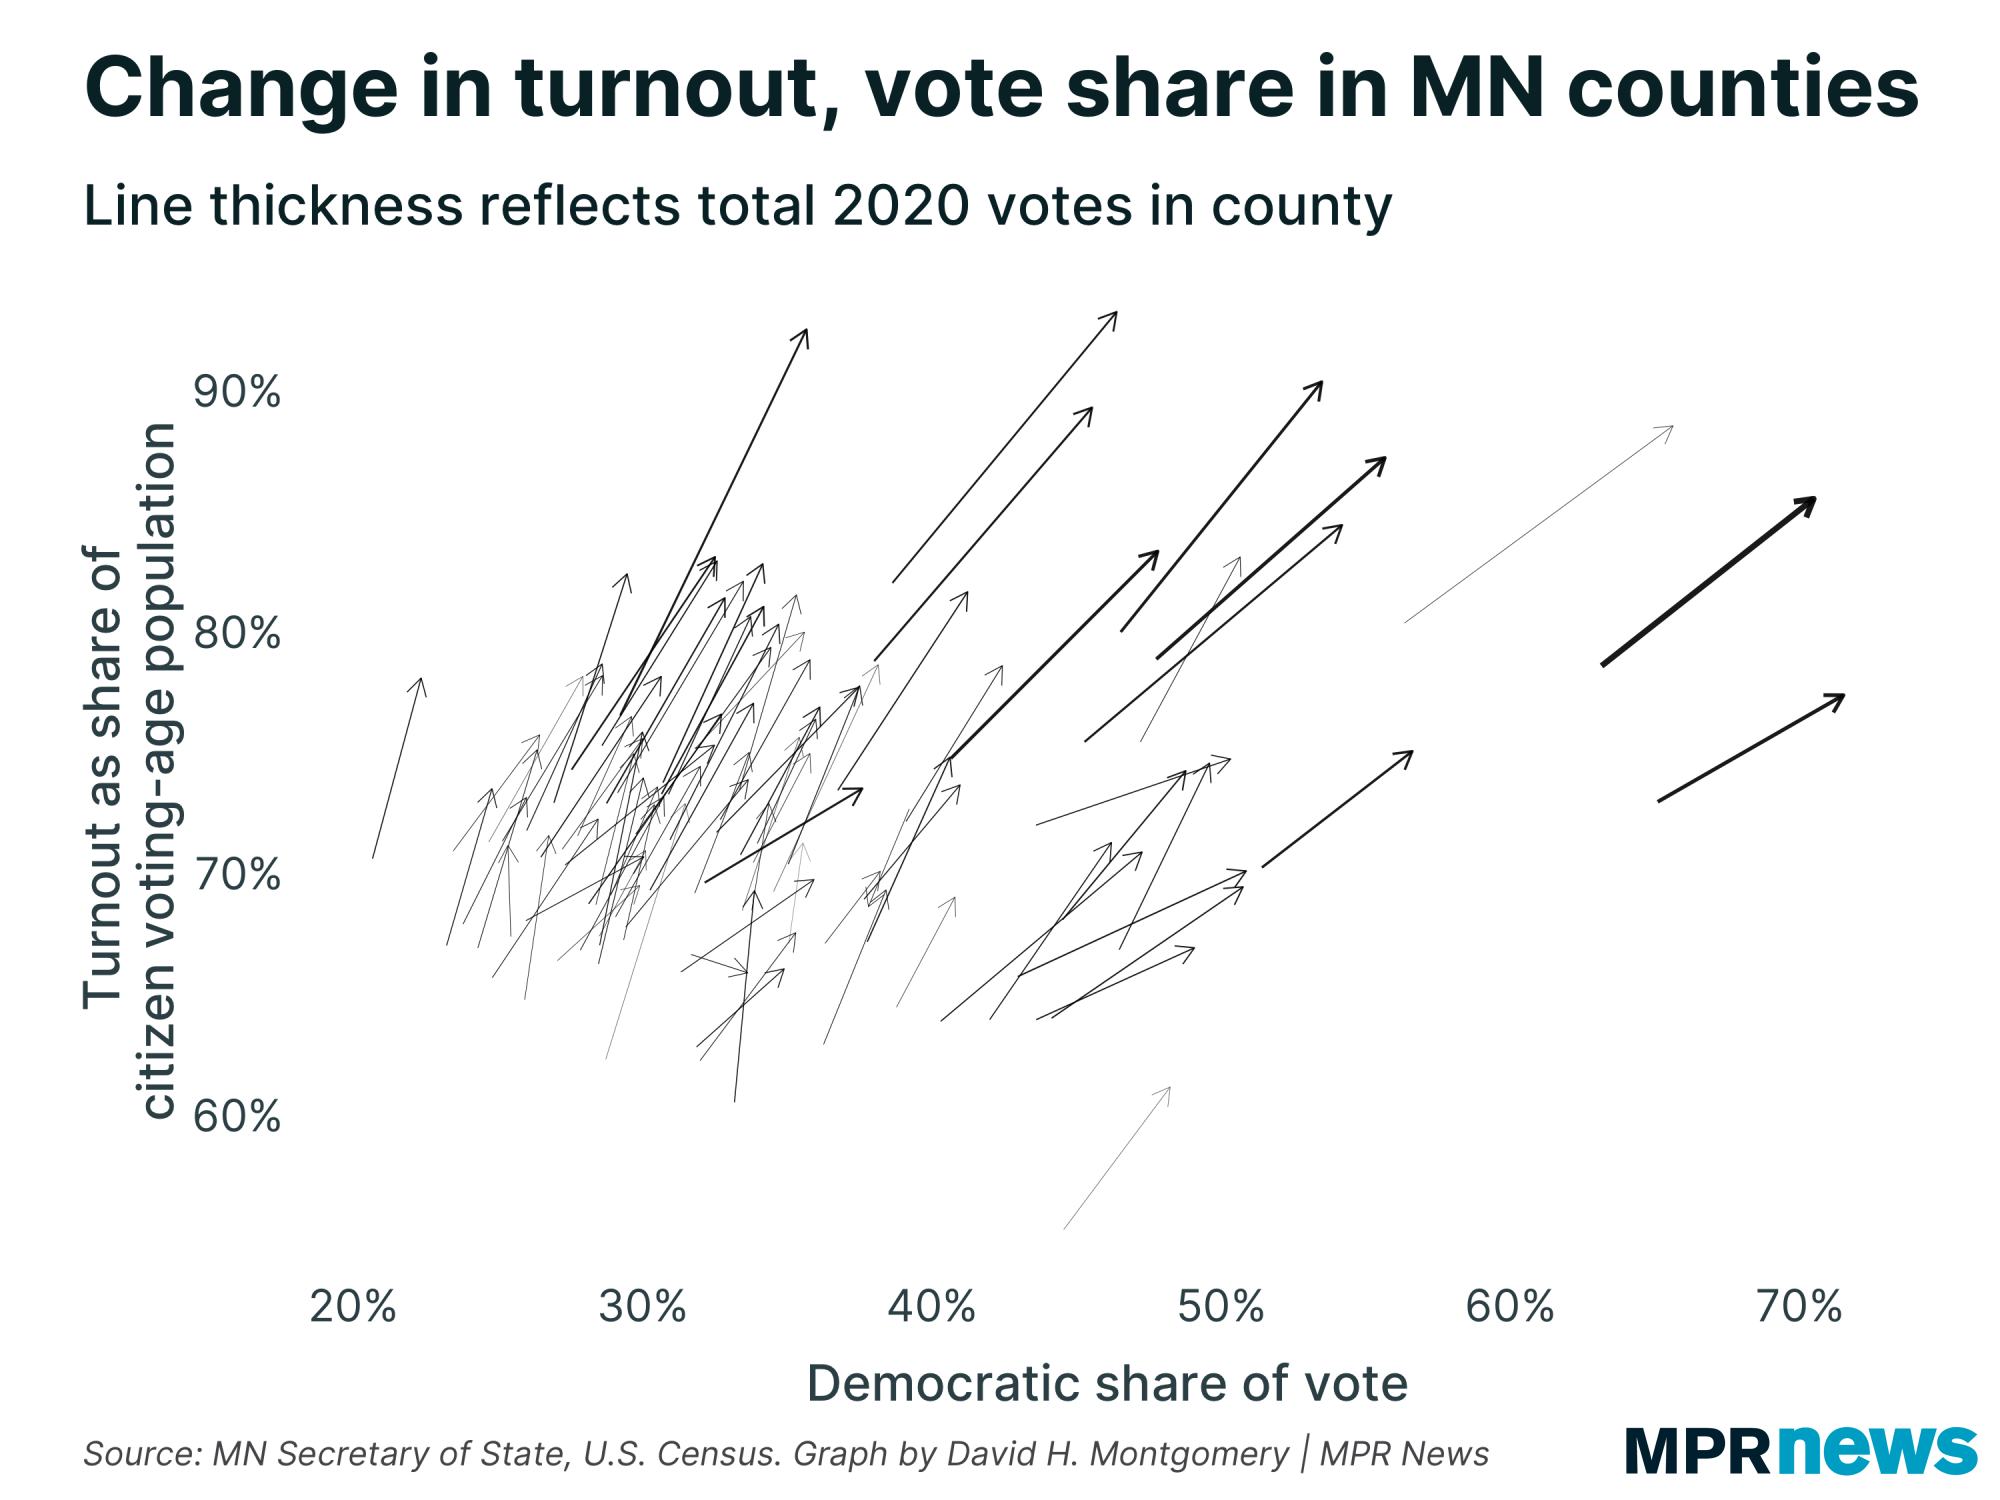 Change in turnout and vote share in MN counties, 2016 vs. 2020